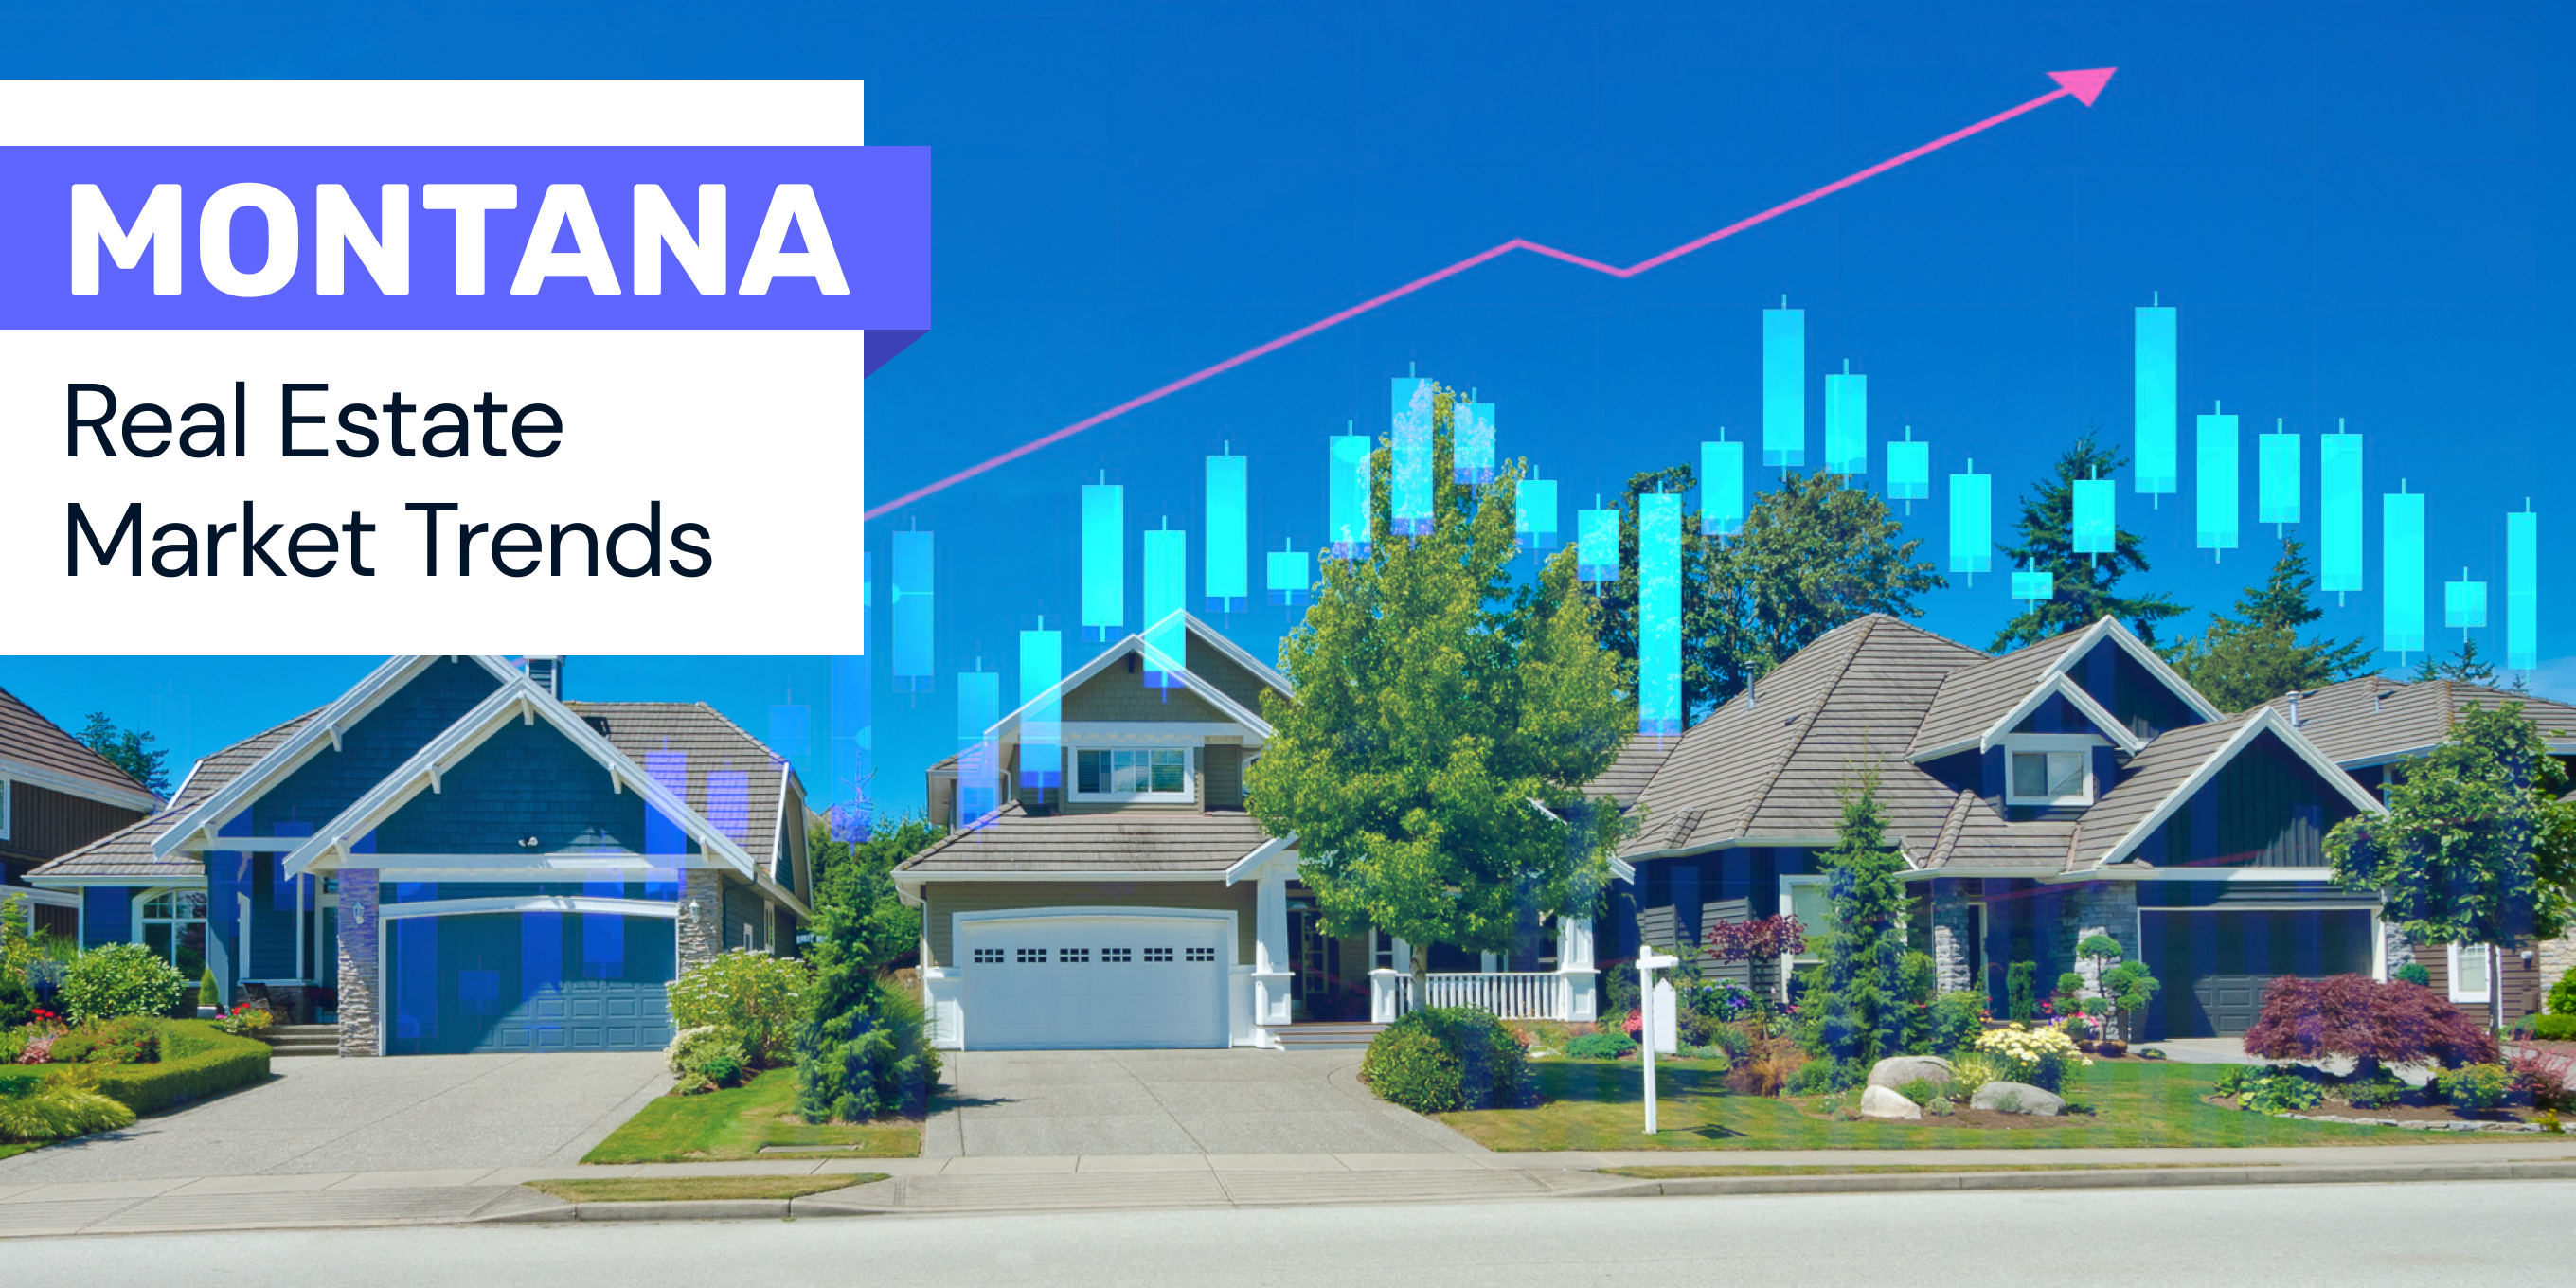 Montana real estate trends